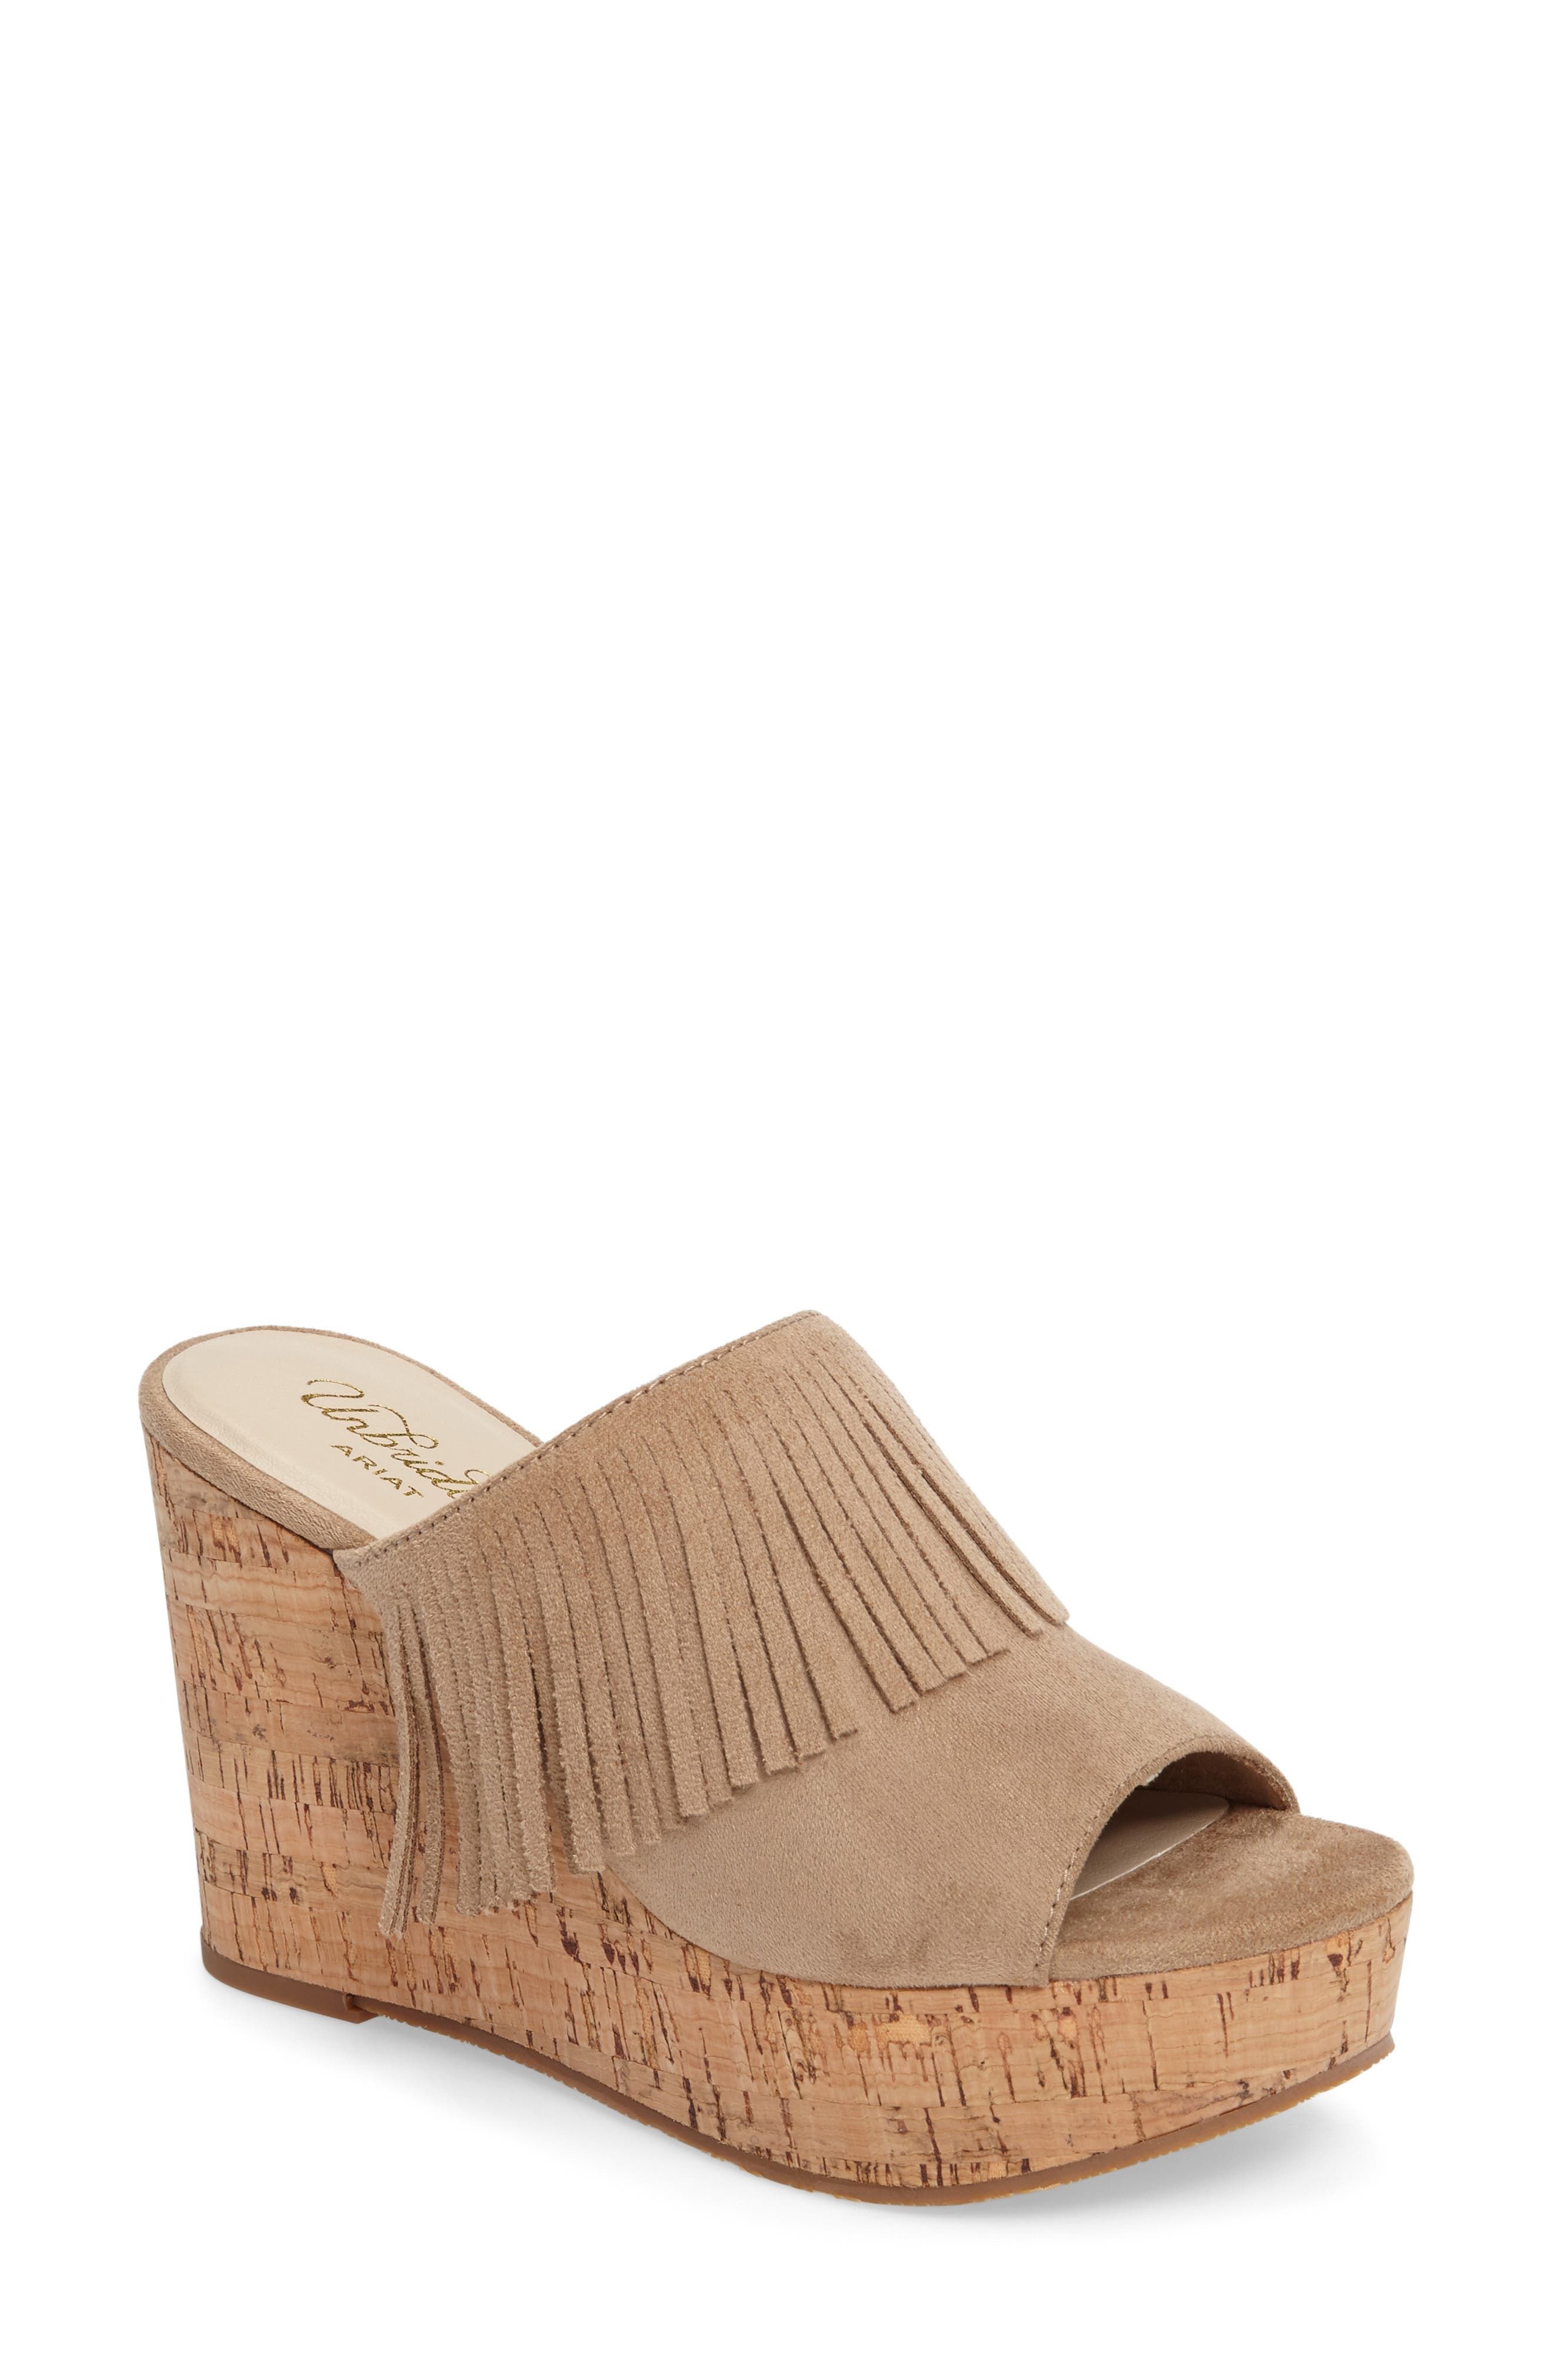 ARIAT, Unbridled Leigh Fringe Mule, Main thumbnail 1, color, SAND FABRIC